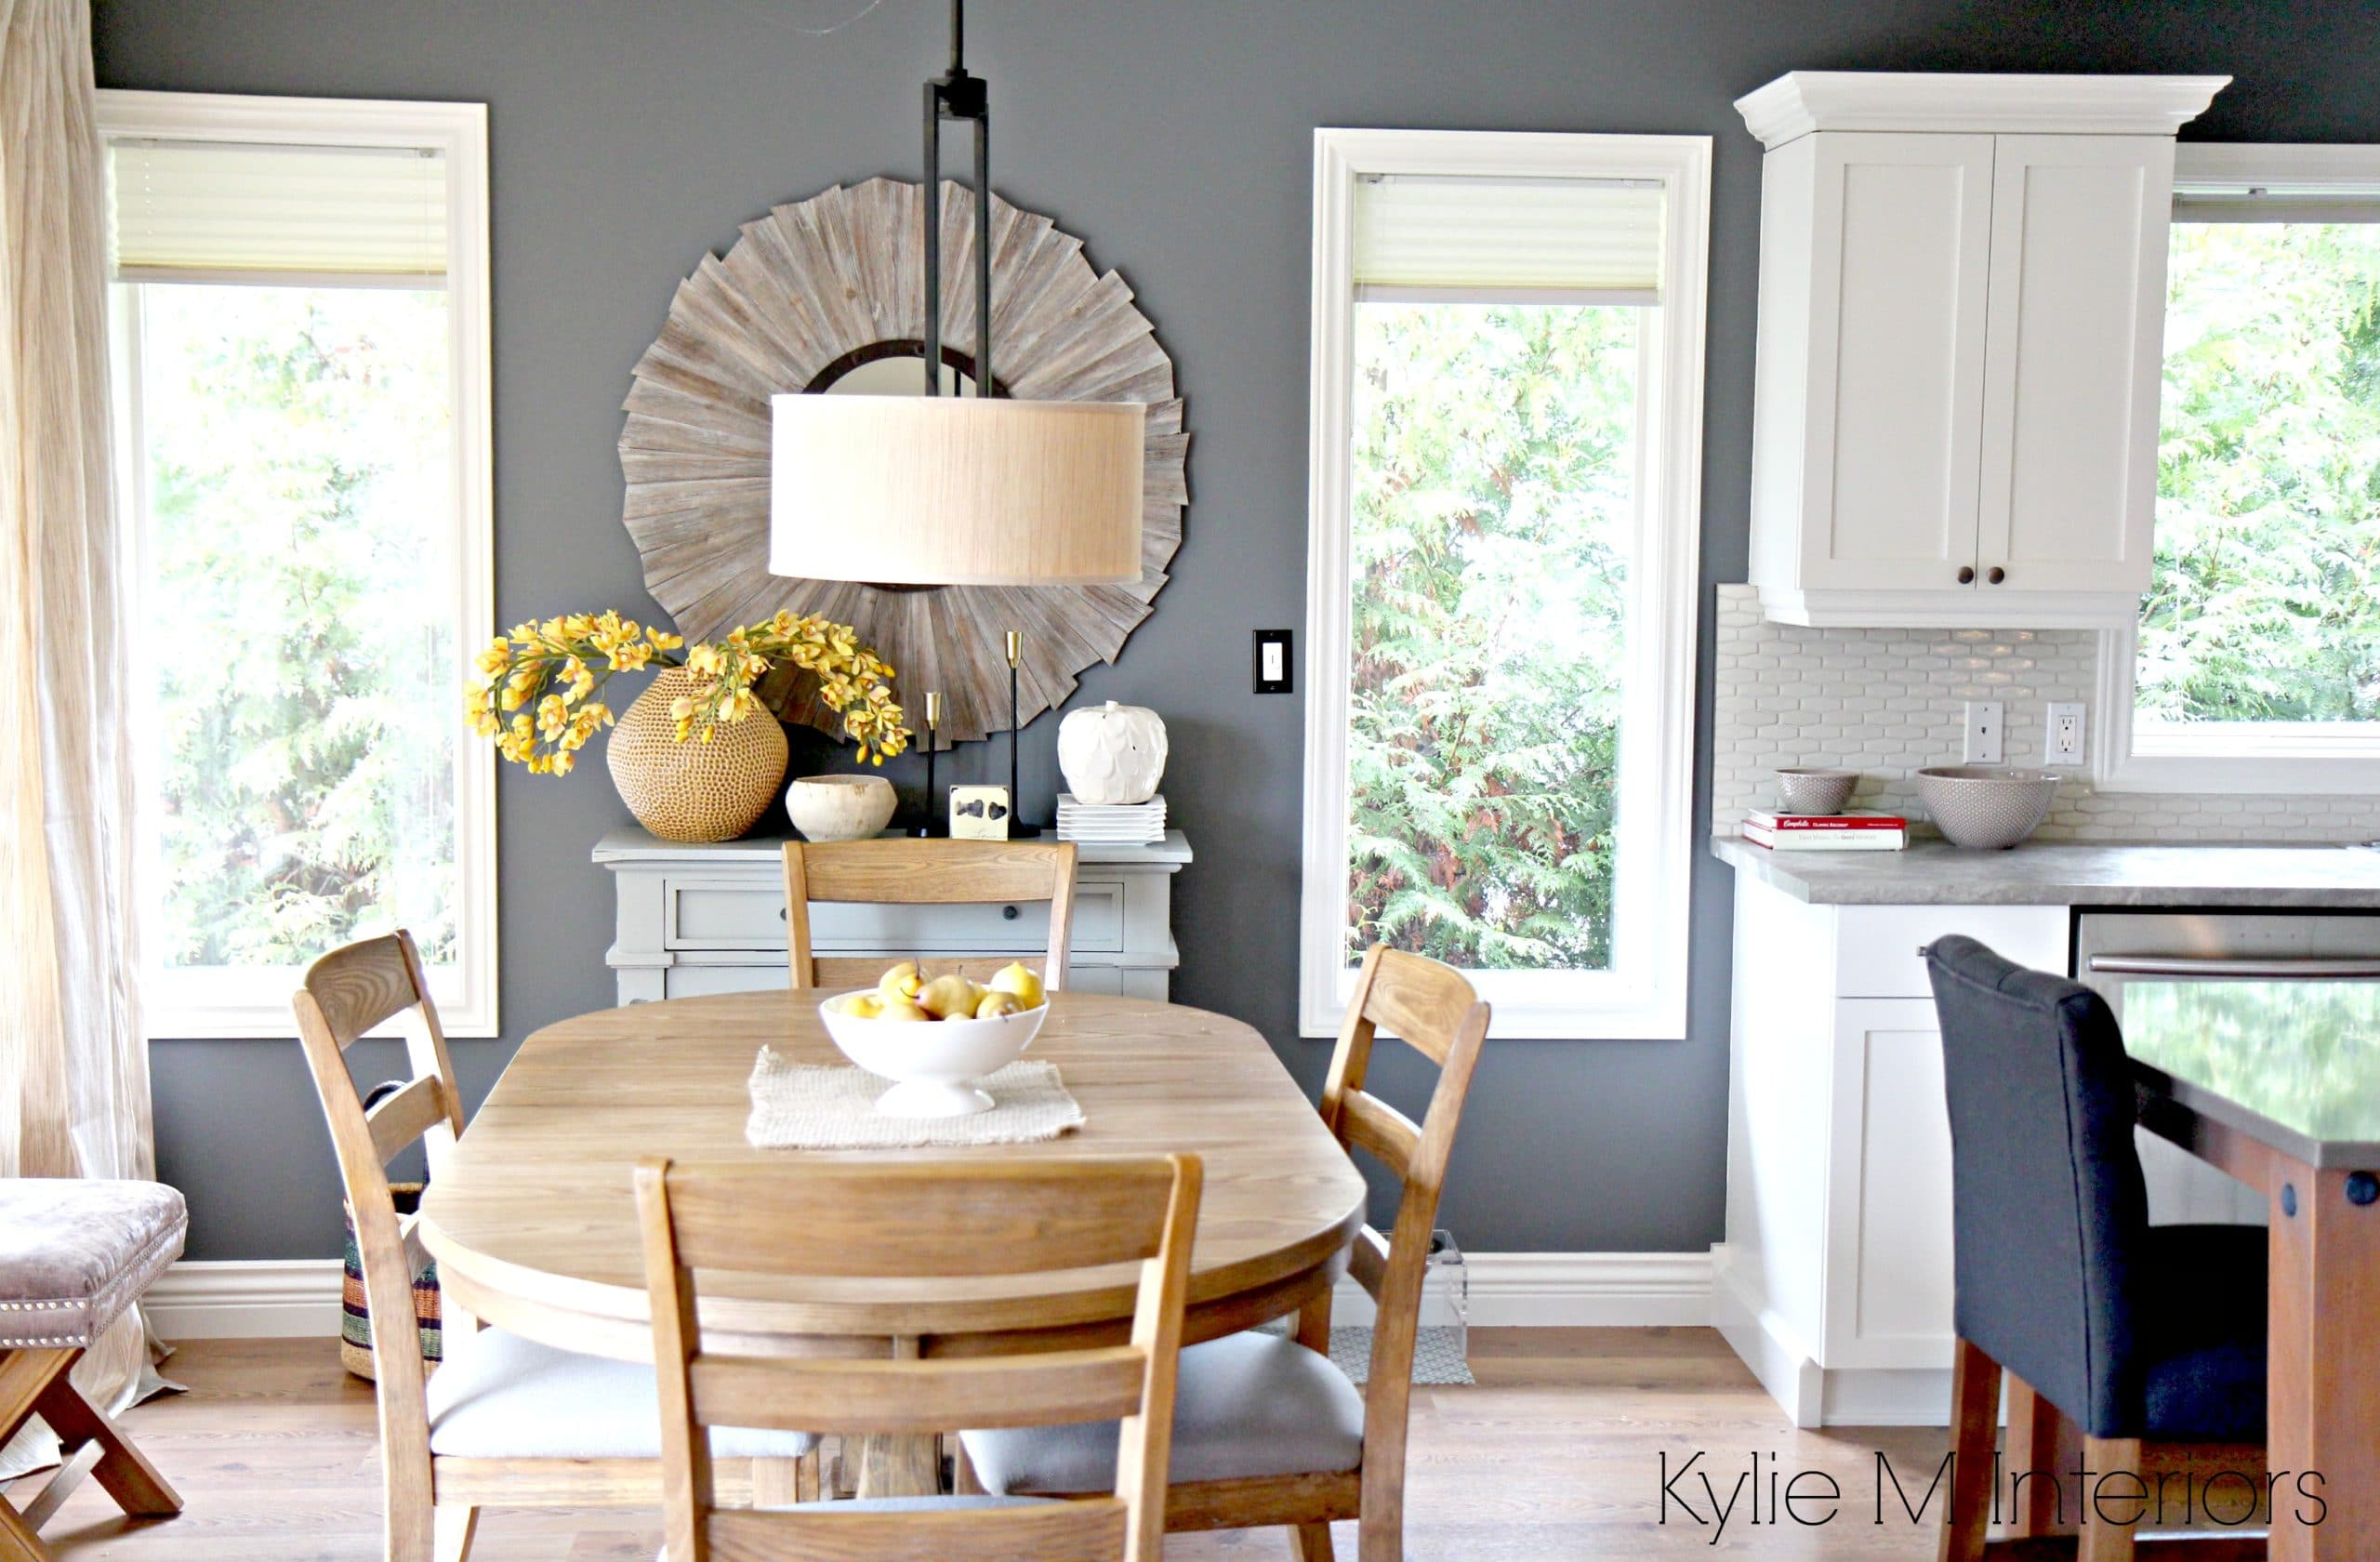 Open Layout Farmhouse Style Dining Room And Kitchen With